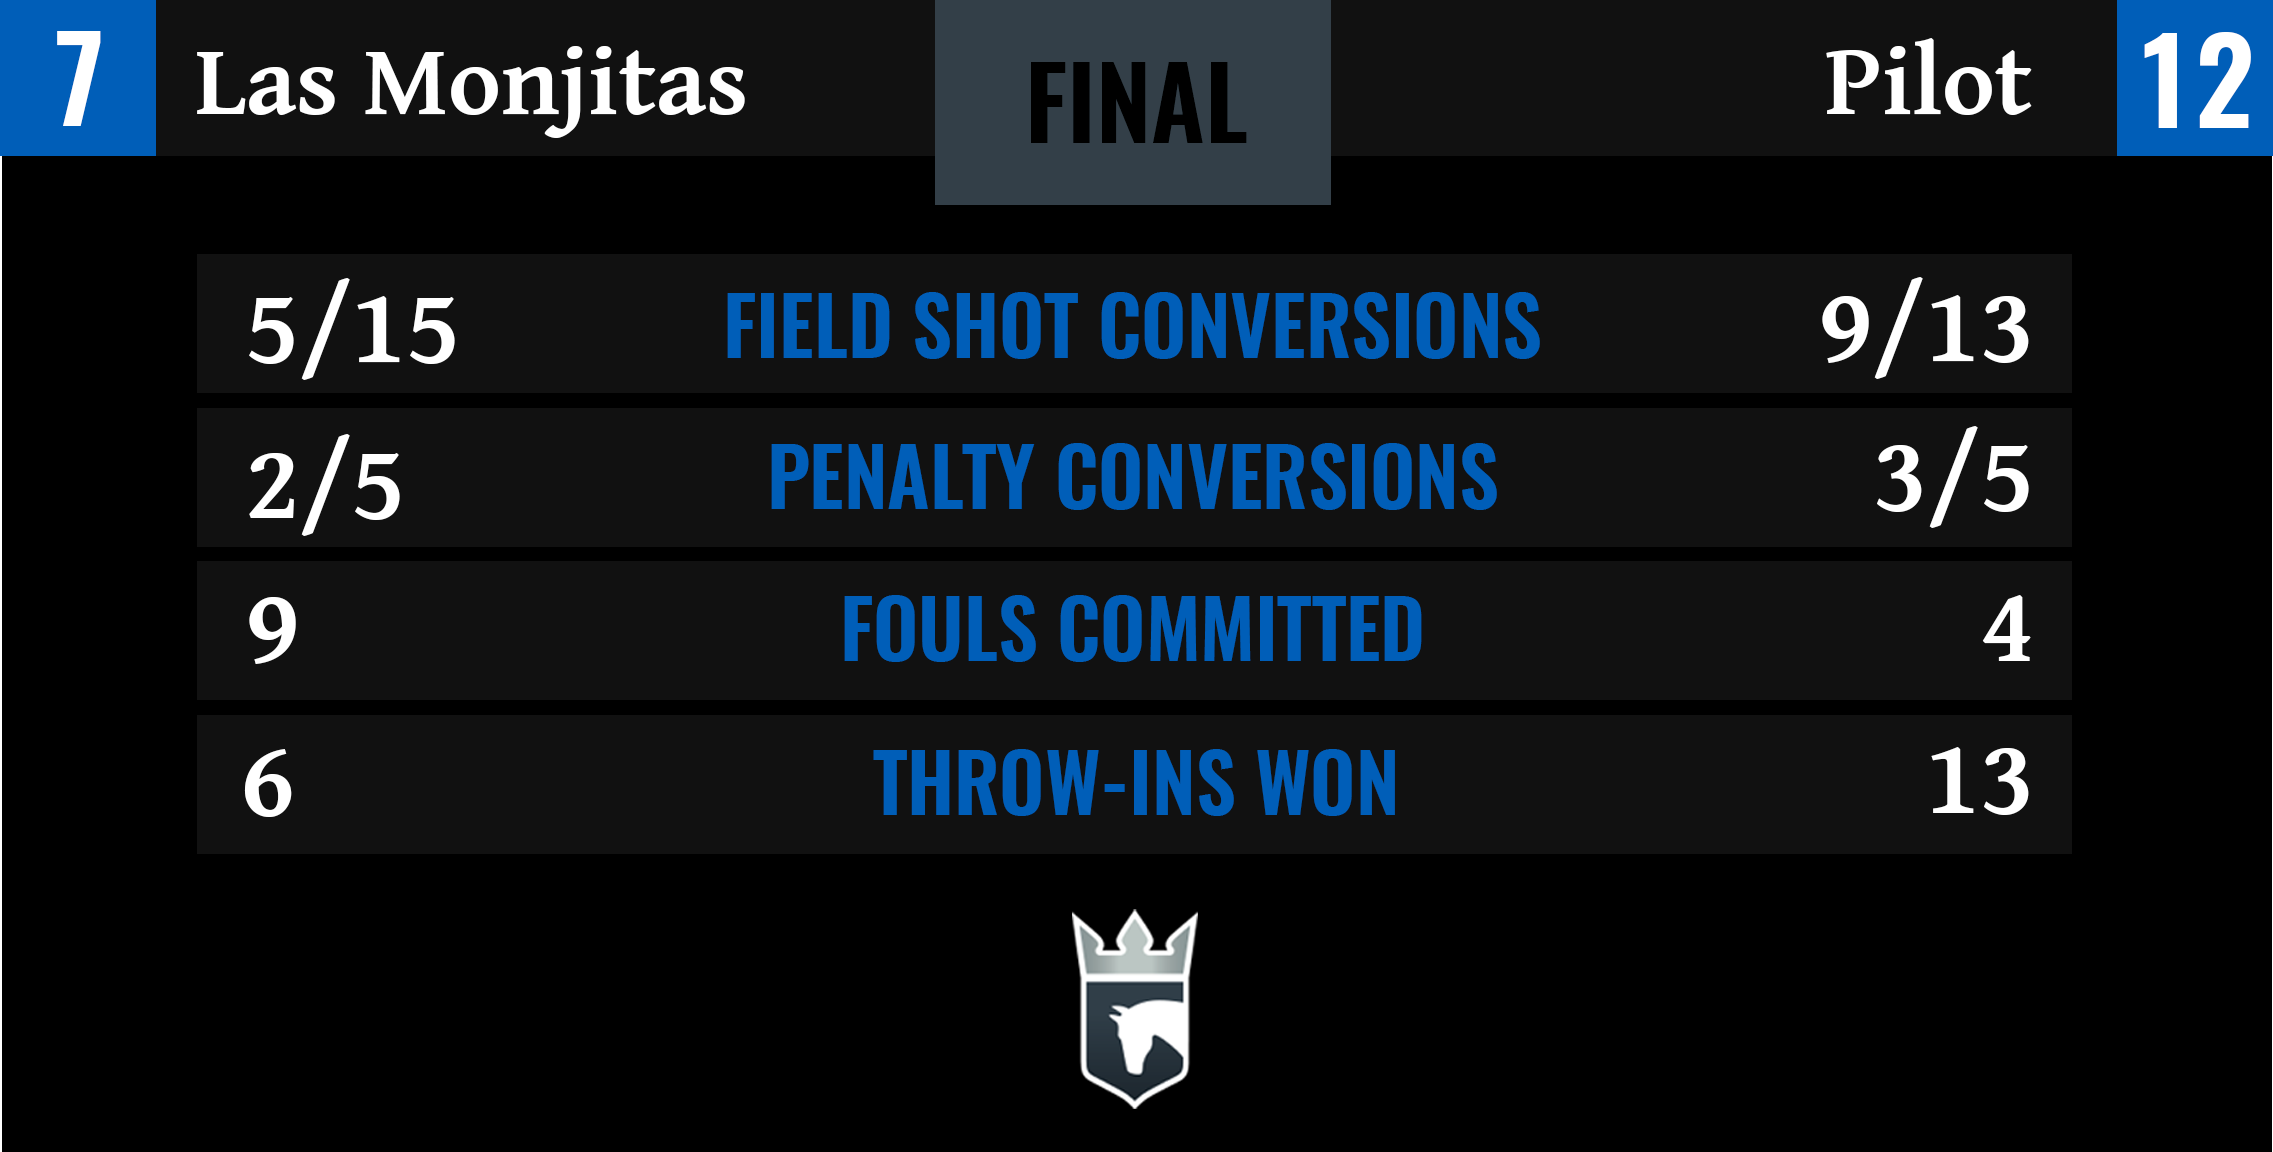 Las Monjitas vs Pilot Final Stats-1